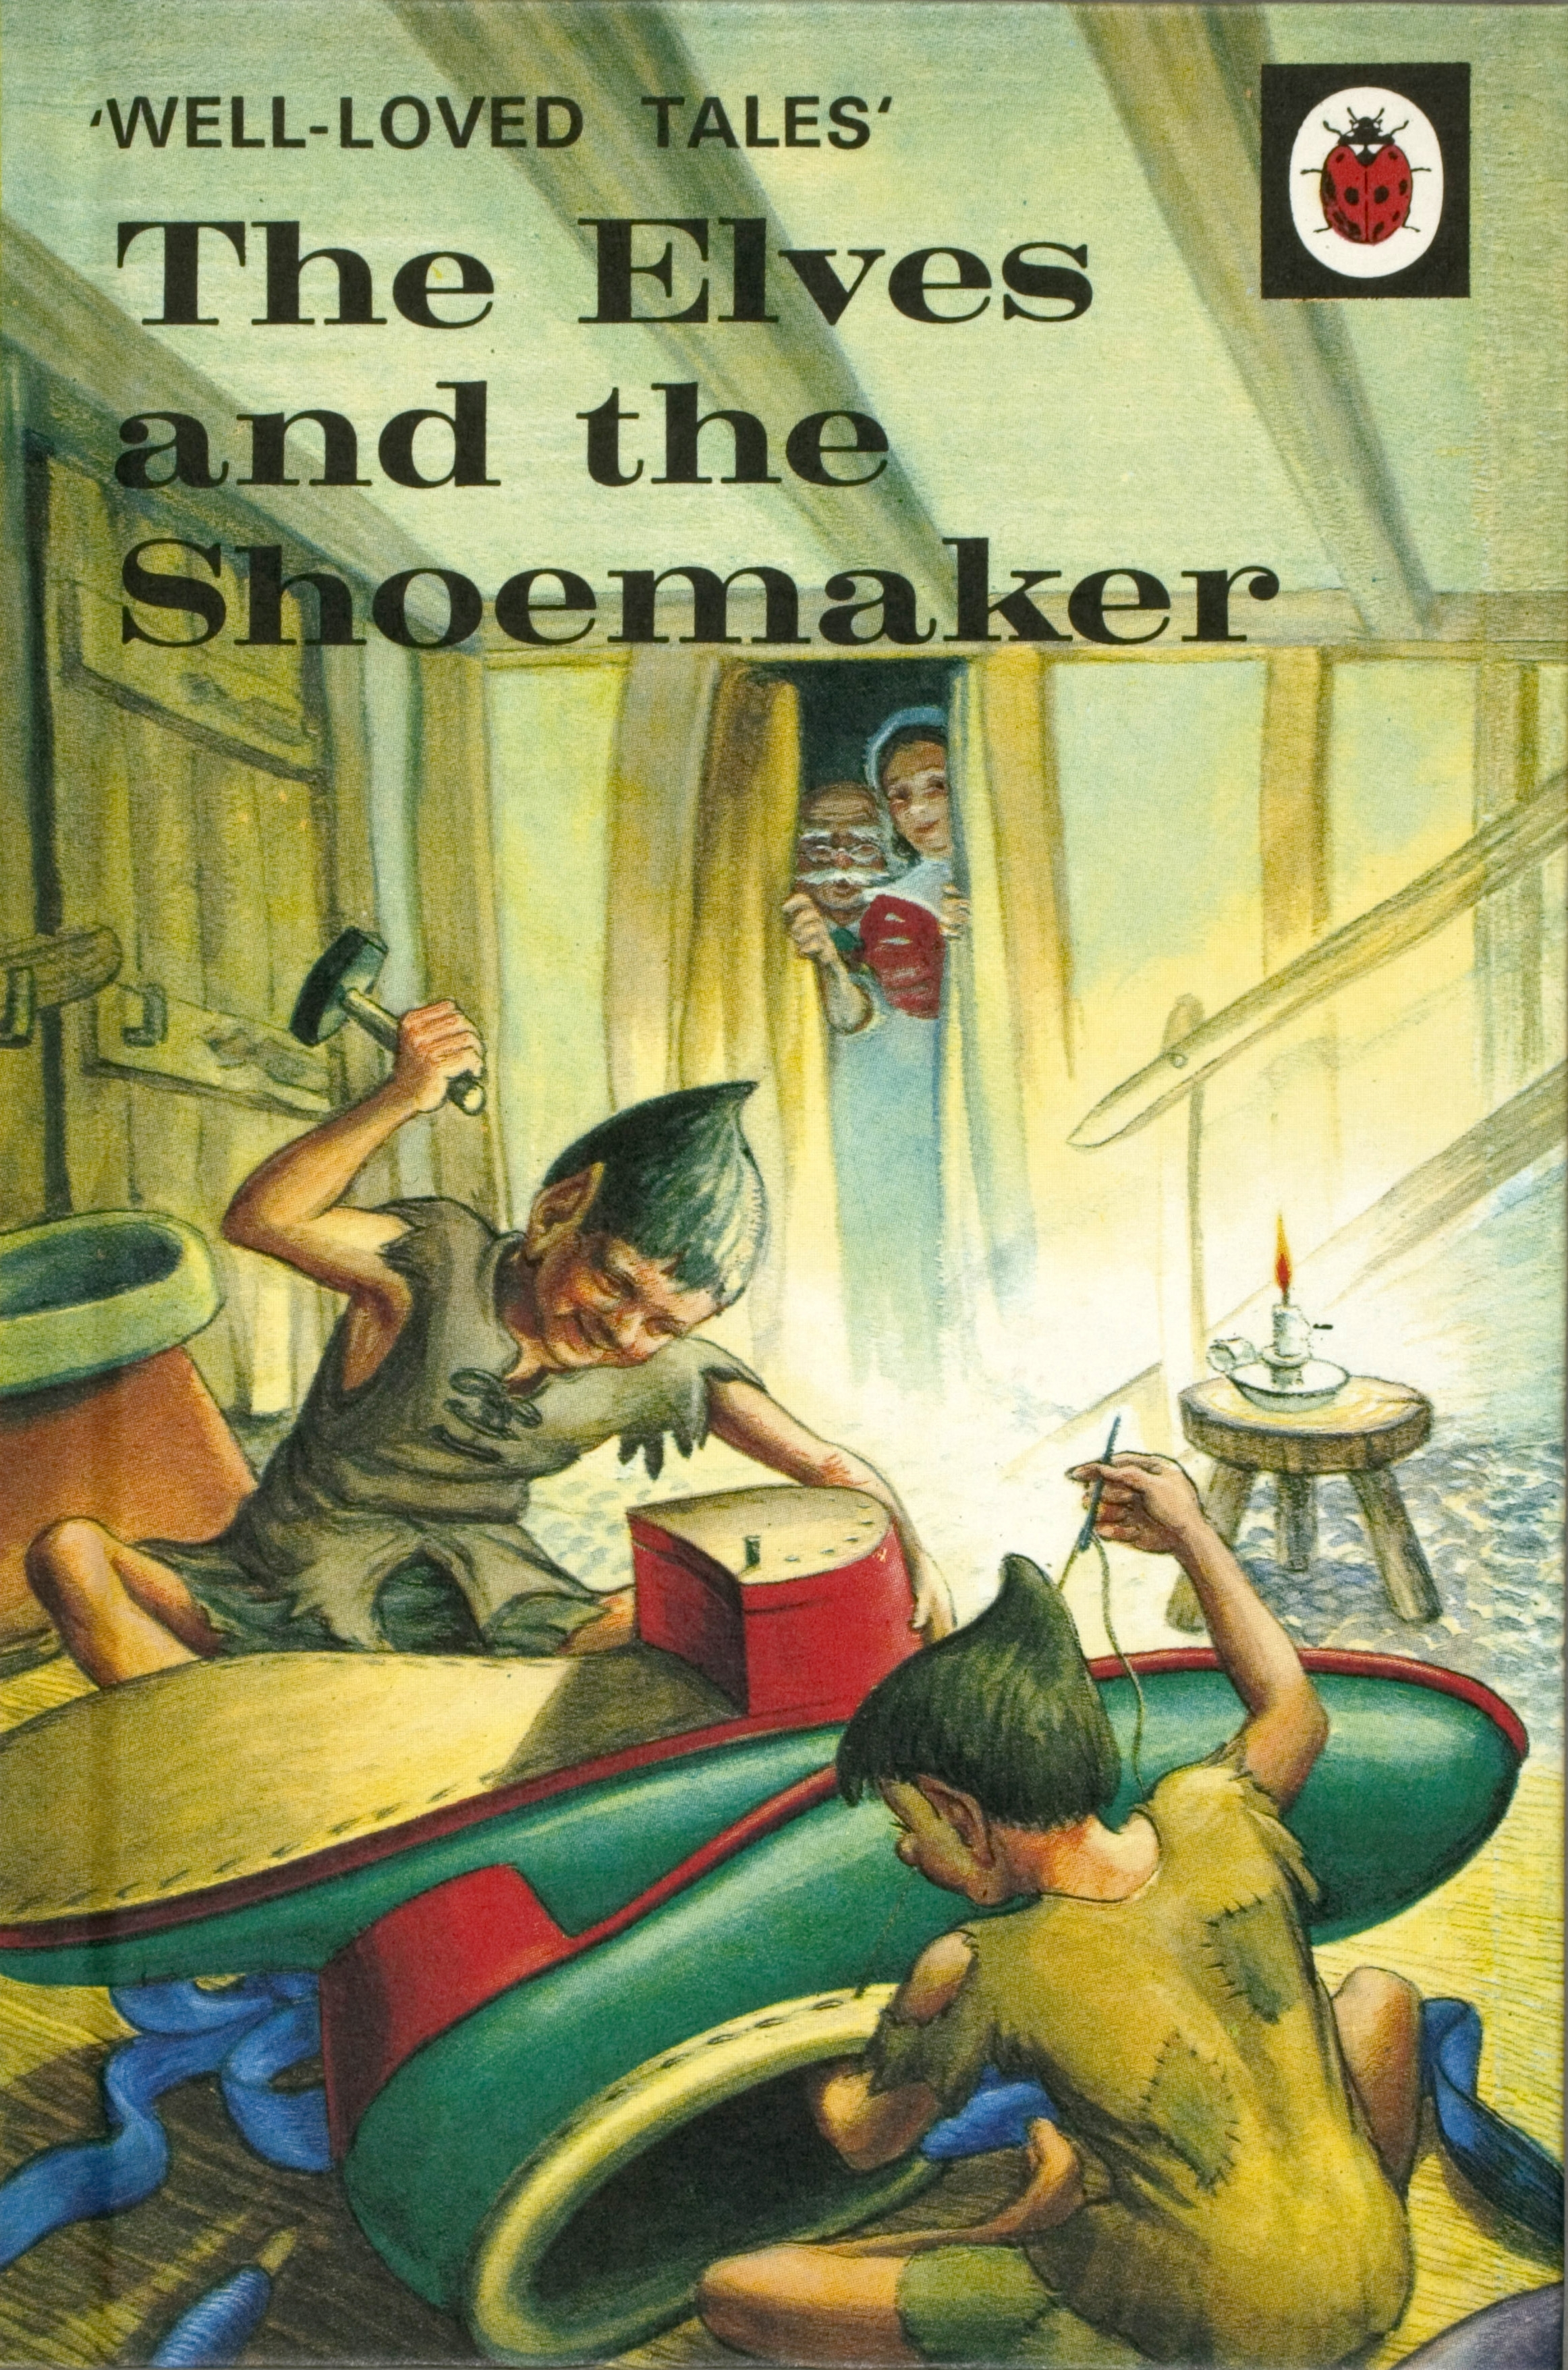 Ladybird Book Cover Pictures ~ Ladybird well loved tales the elves and shoemaker